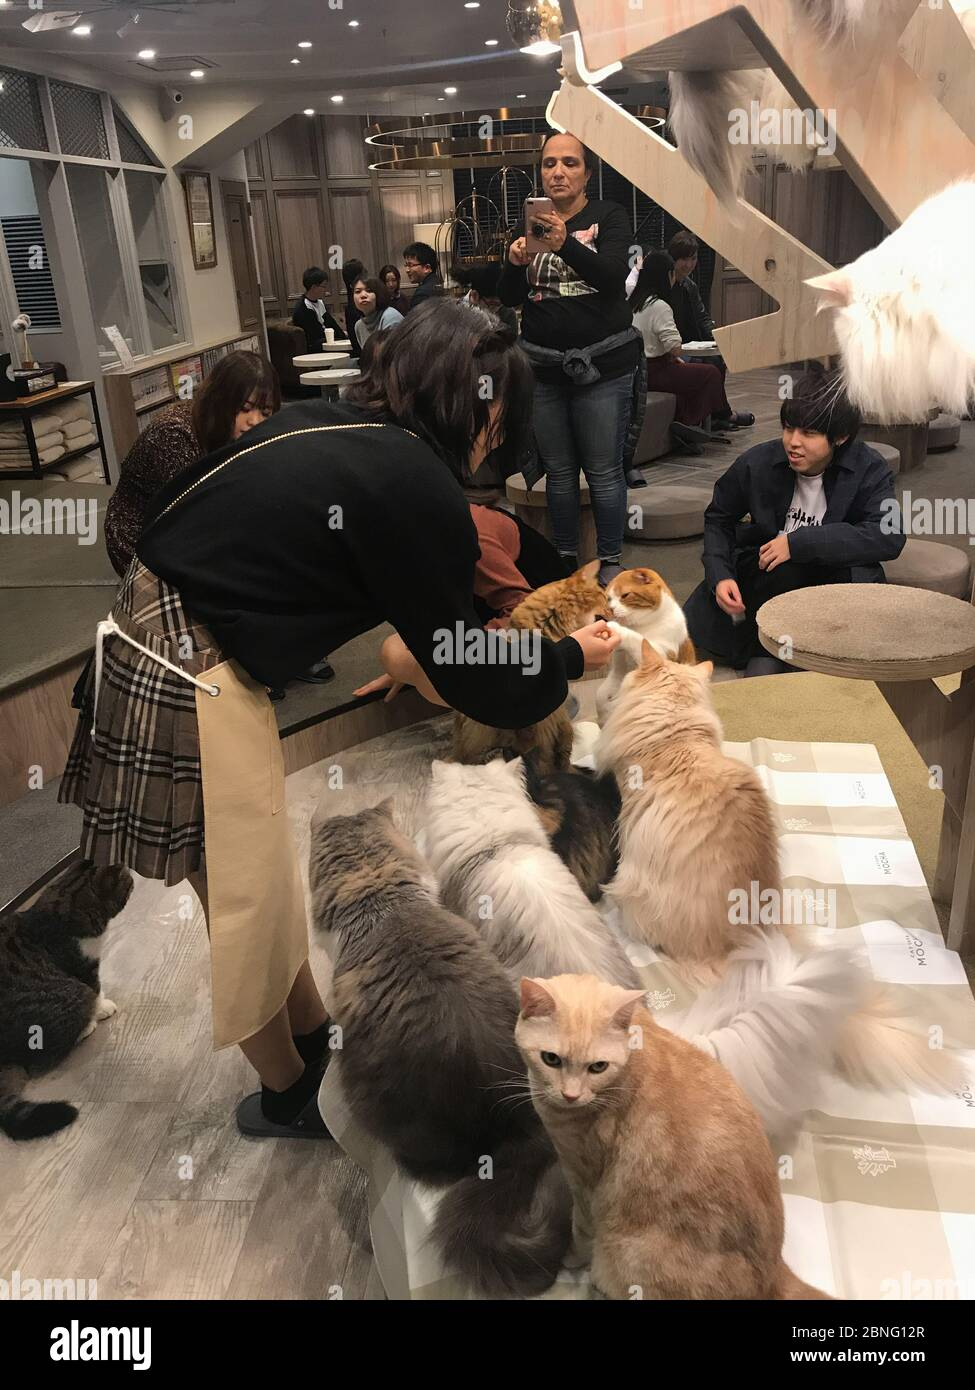 People Petting And Photographing Cats At The Cat Cafe Mocha In Shibuya Tokyo Stock Photo Alamy